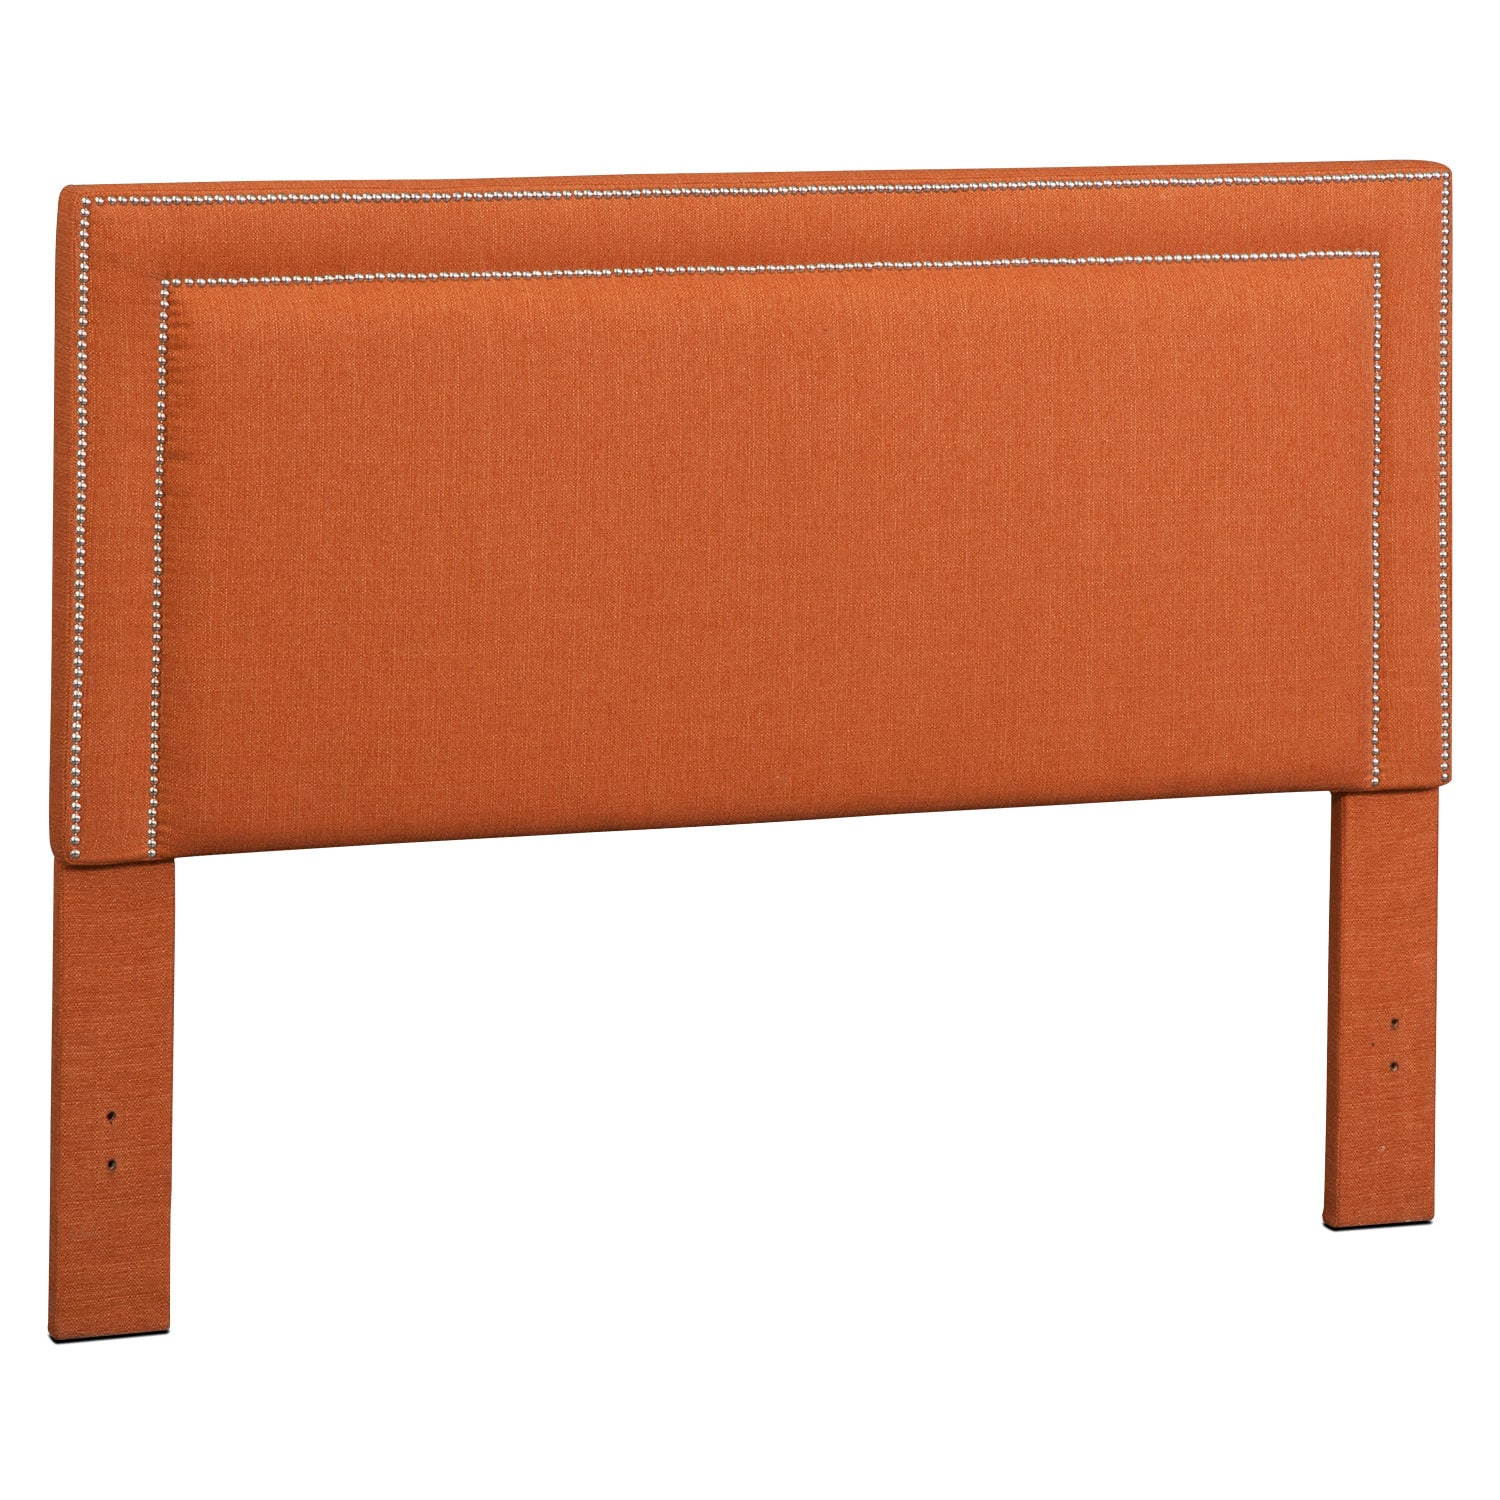 Natalie King Upholstered Headboard - Orange